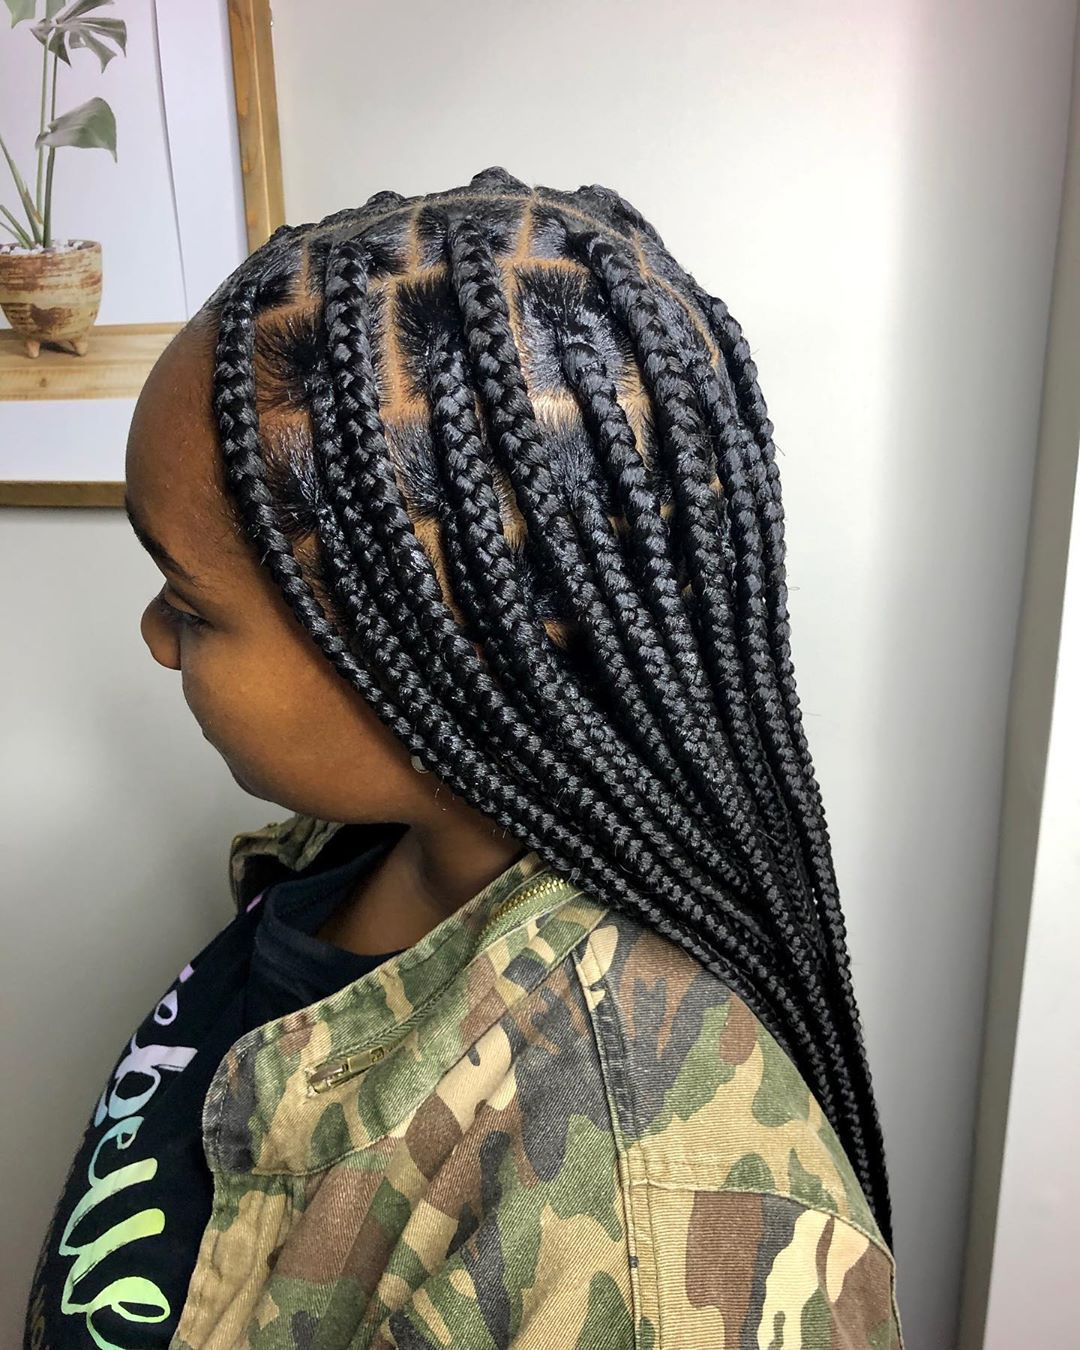 Ordinaryher On Instagram Large Knotless Braids Box Braids Hairstyles For Black Women Braided Hairstyles Hair Styles Knotless braids are stylish, low maintenance, and painless. box braids hairstyles for black women